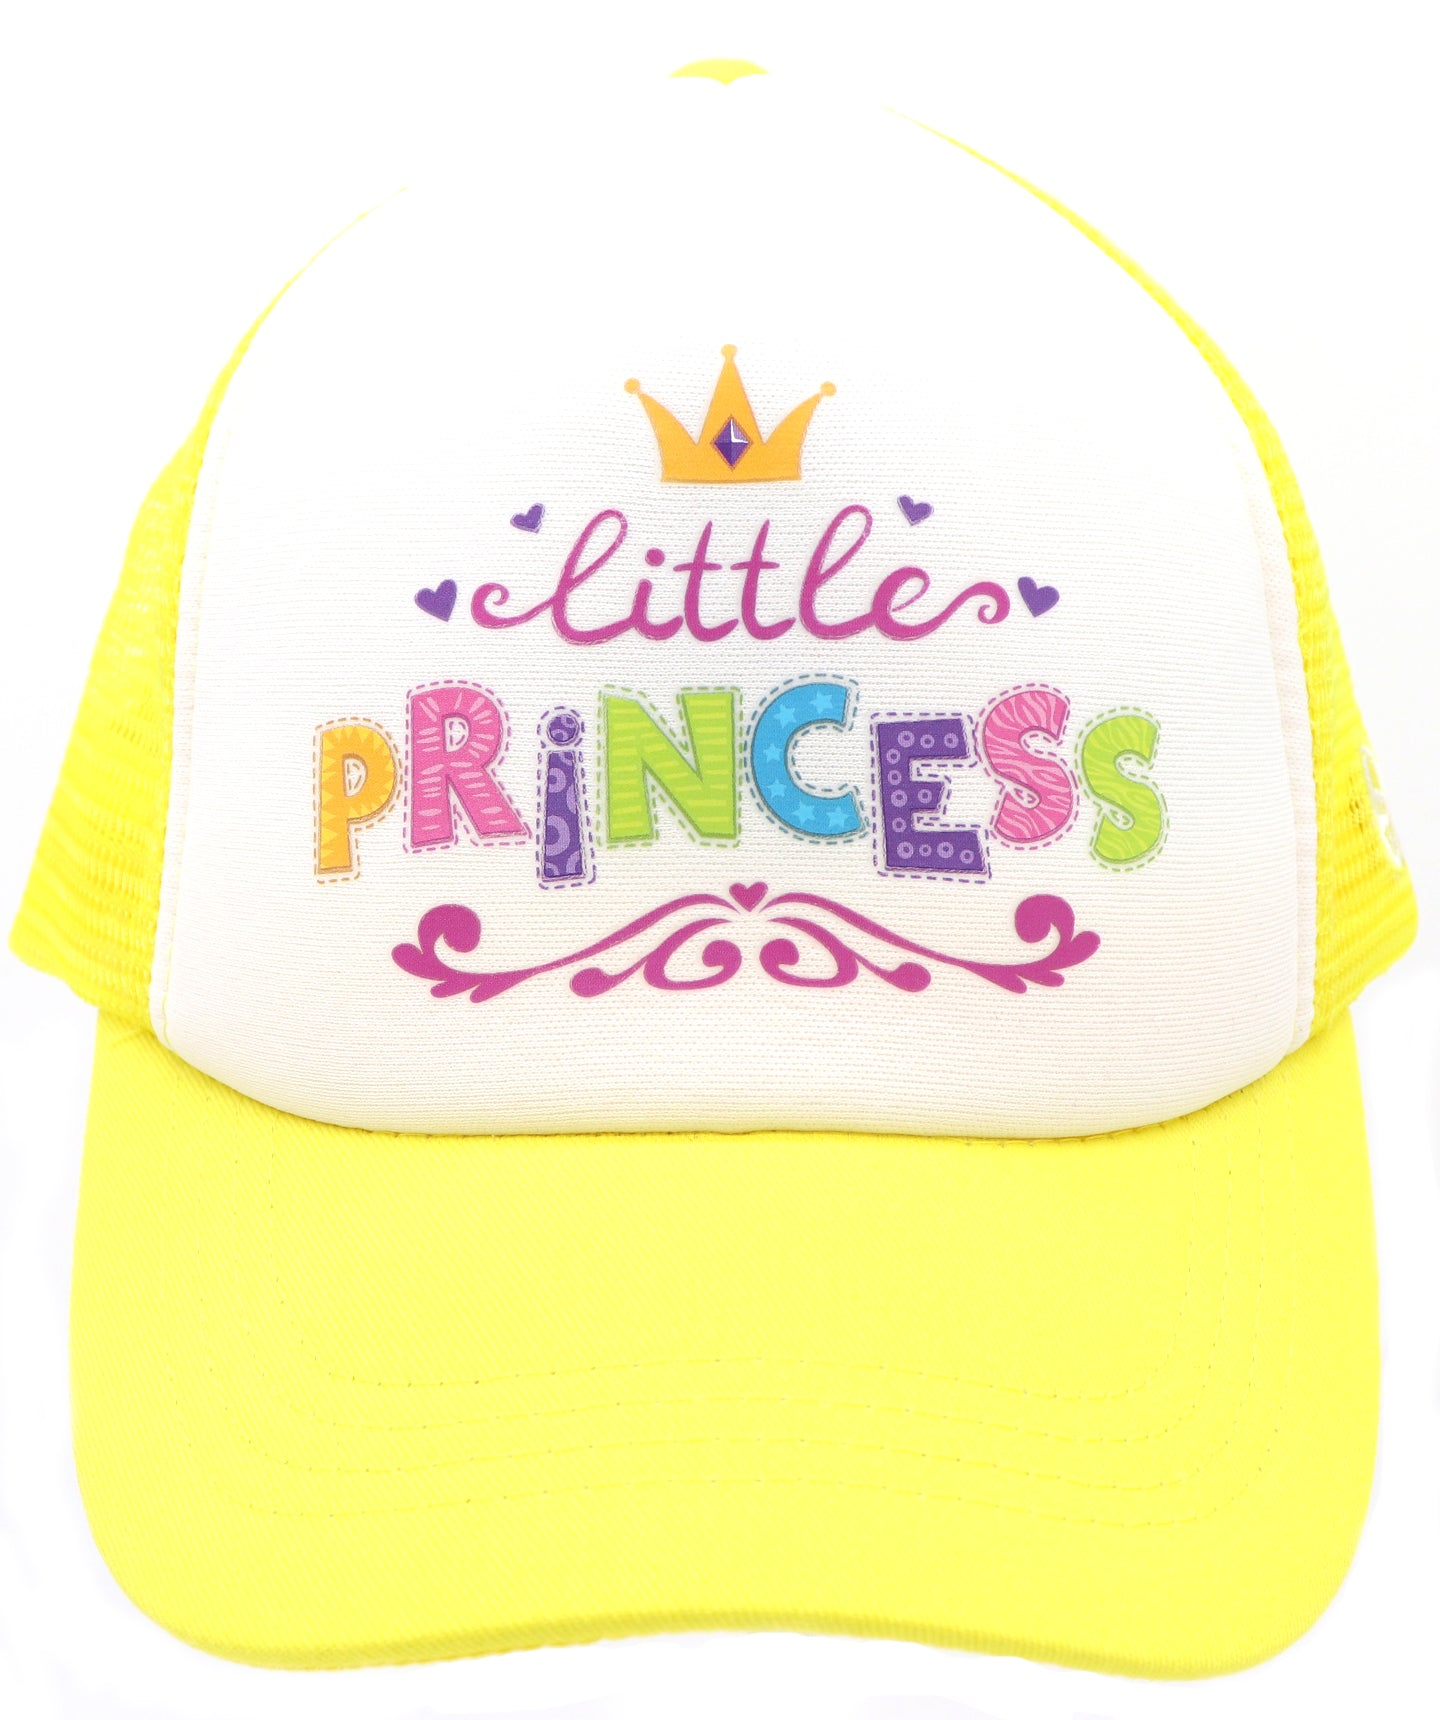 Little princess baseball hat for girl's ages 3-7. Yellow hat features a crown, purple hearts, and colorful letters, little princess. Let your daughter, niece, or little one know they are loved. Hat for everyday, summer, beach, ocean hat for youth, boys, girls, and even toddler with snapback. Kids baseball hat Sold by SDtrading Co.